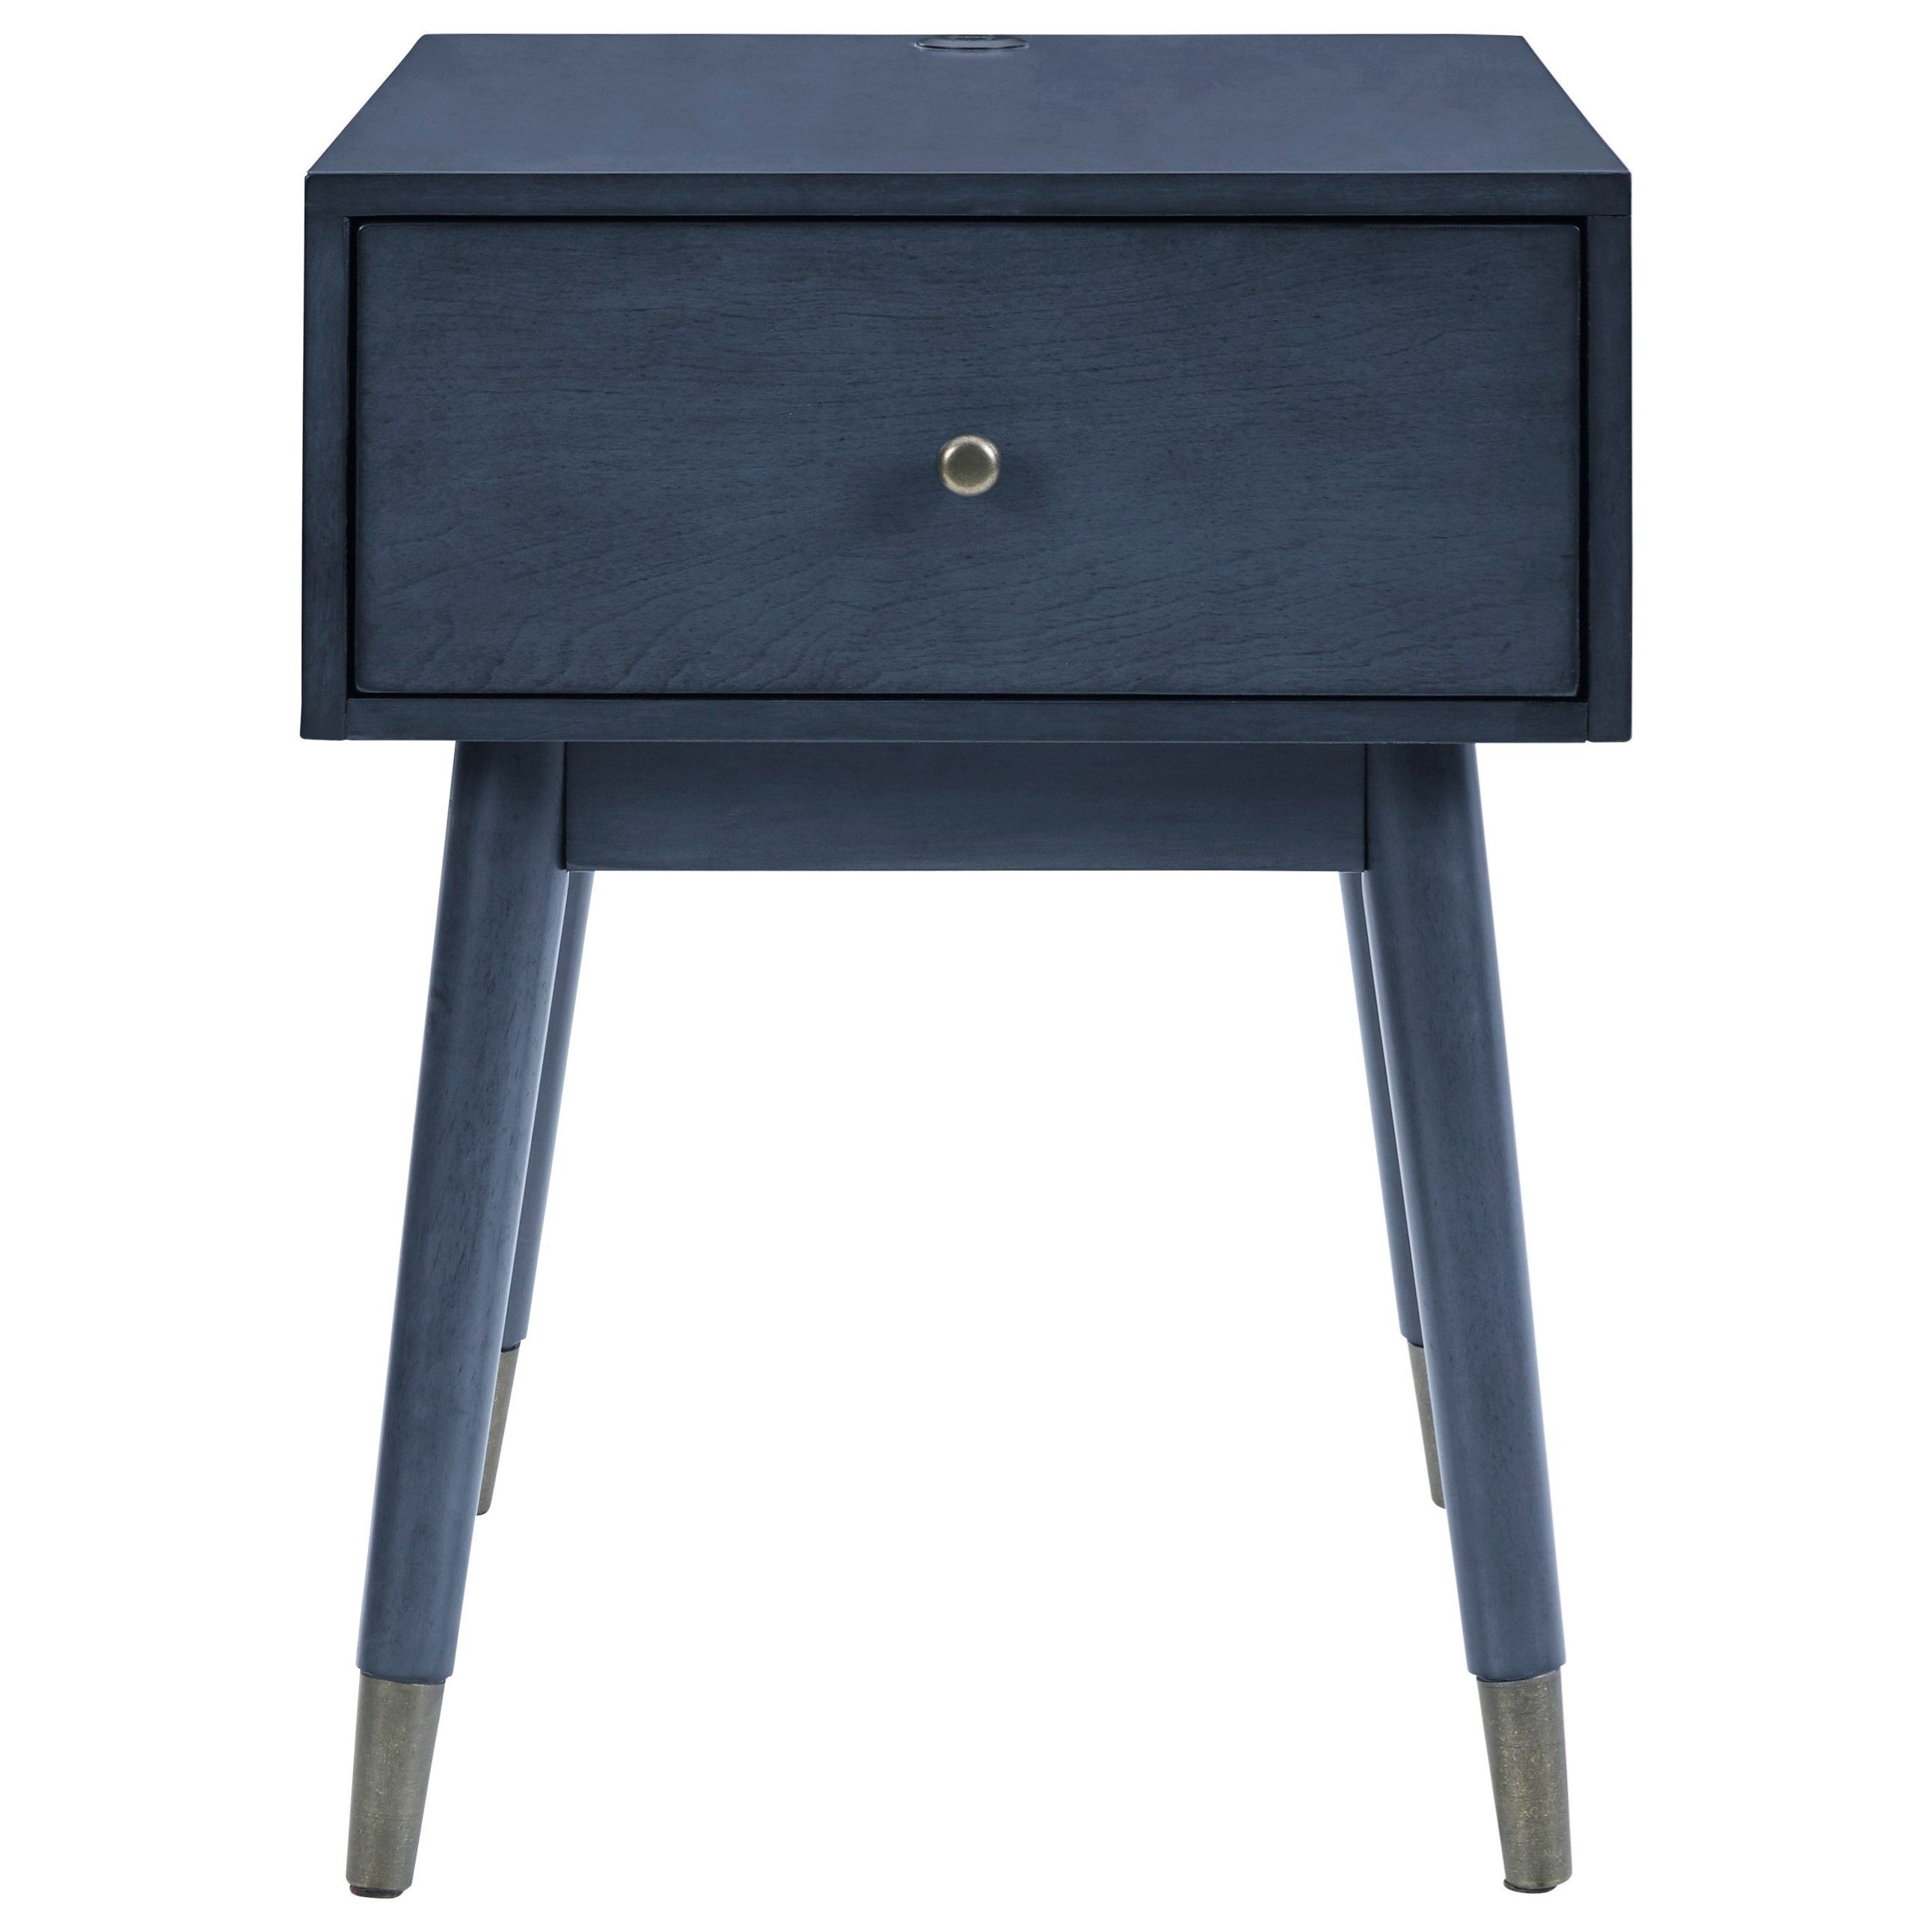 Paulrich Accent Table by Signature Design by Ashley at Sam Levitz Outlet